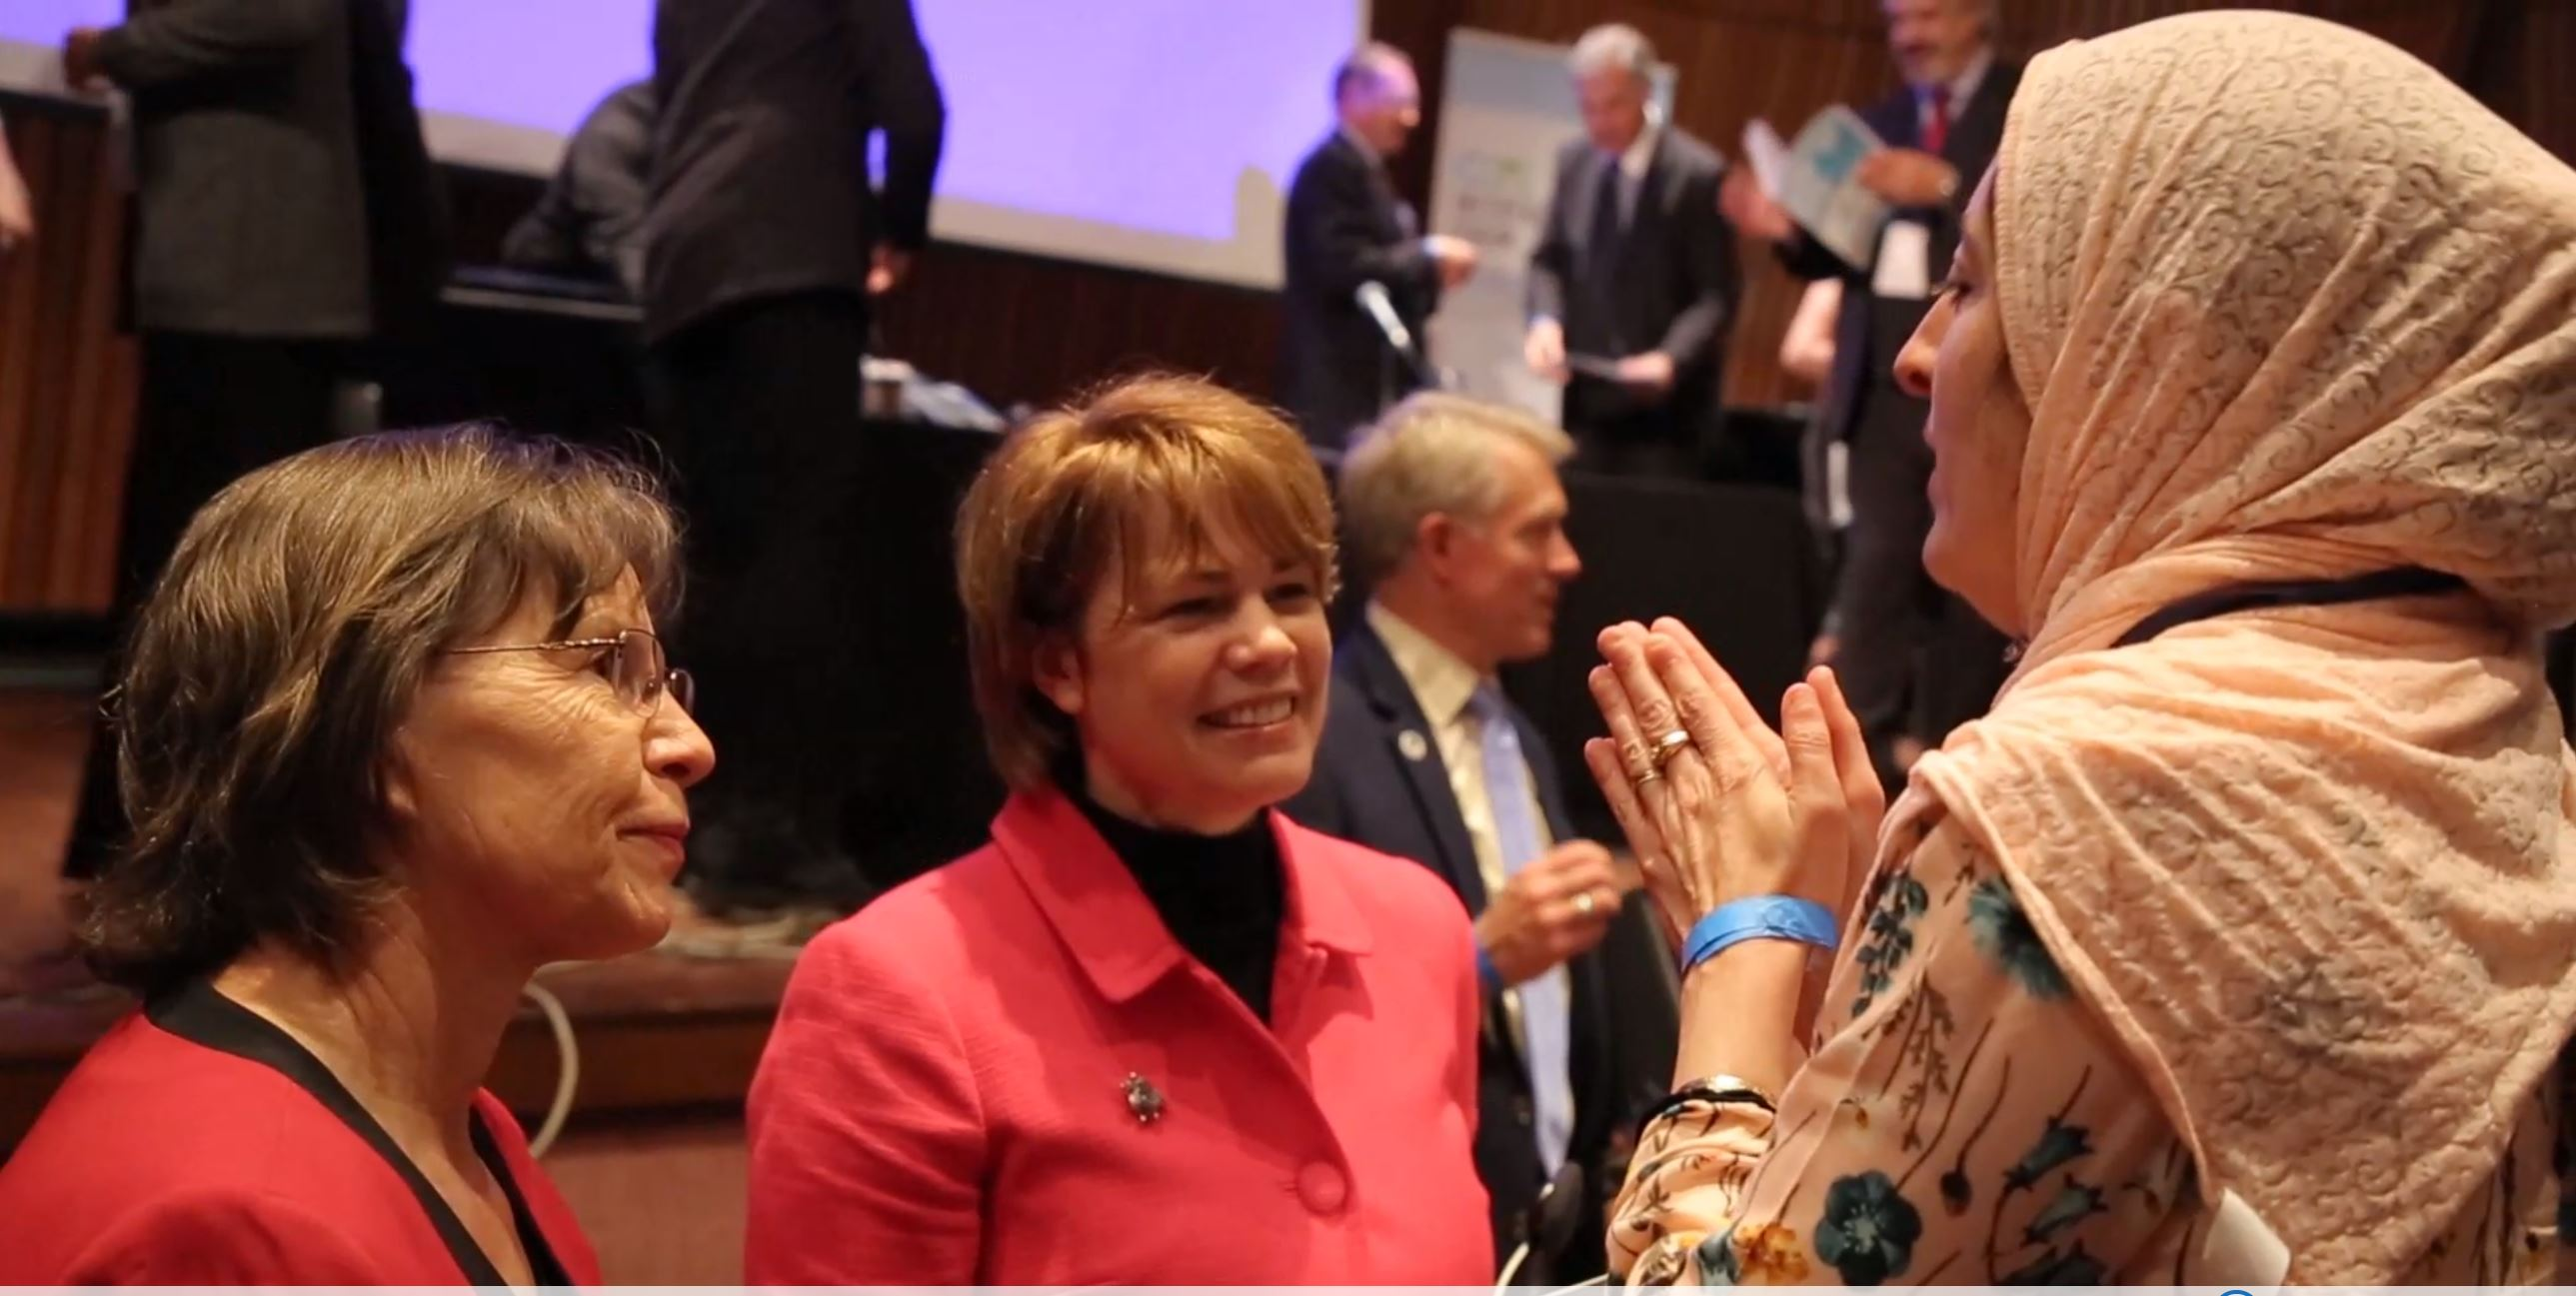 Sister Sharon Eubank, director of LDS Charities and first counselor in the Church's Relief Society general presidency, at the G20 Interfaith Forum in Buenos Aires, Argentina, Sept. 27, 2018.